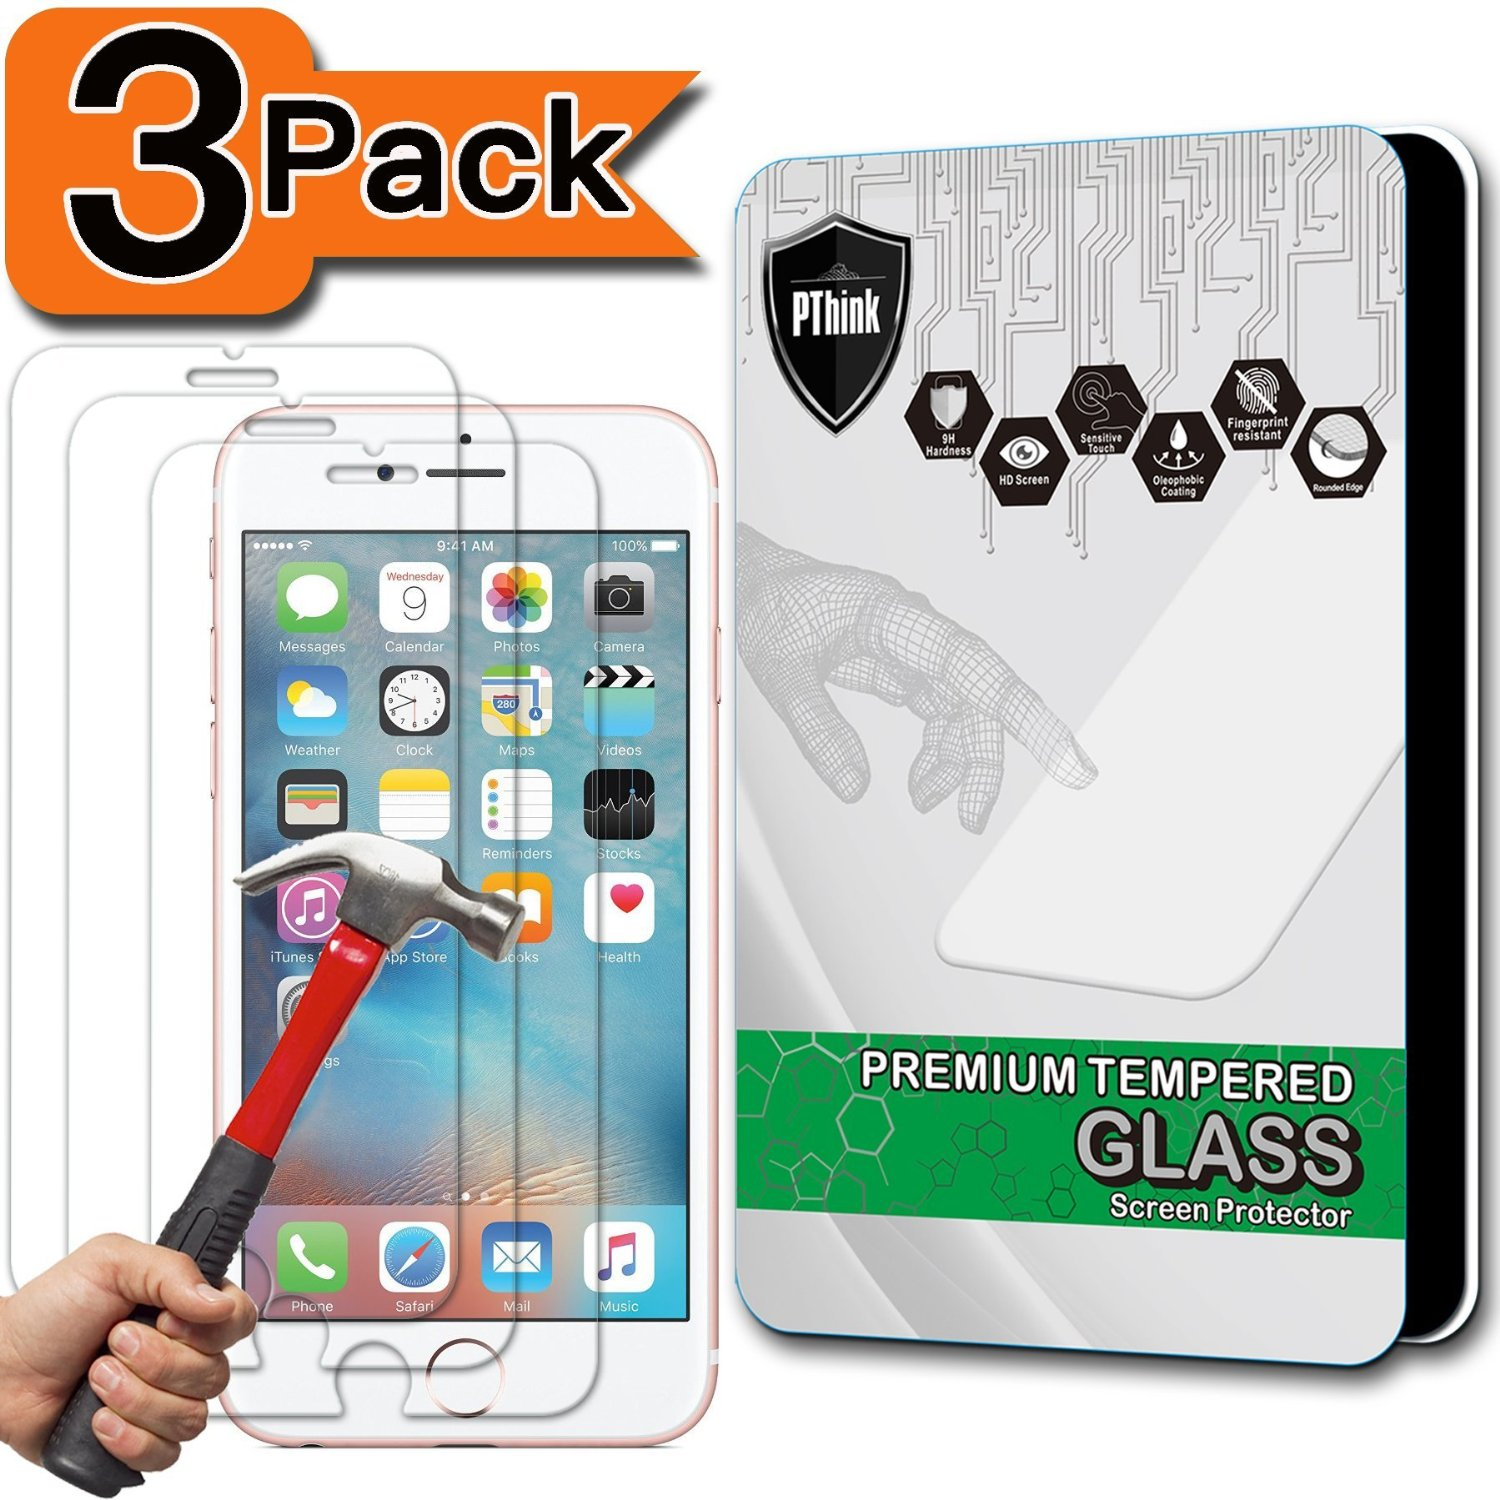 [3-Pack] iPhone 6s Screen Protector, PThink [Tempered Glass] [9H Hardness] [Anti-Scratch] [Fingerprint Resistant] [Easy-Install] Glass Screen Protector for iPhone 6 6s (3-Pack)